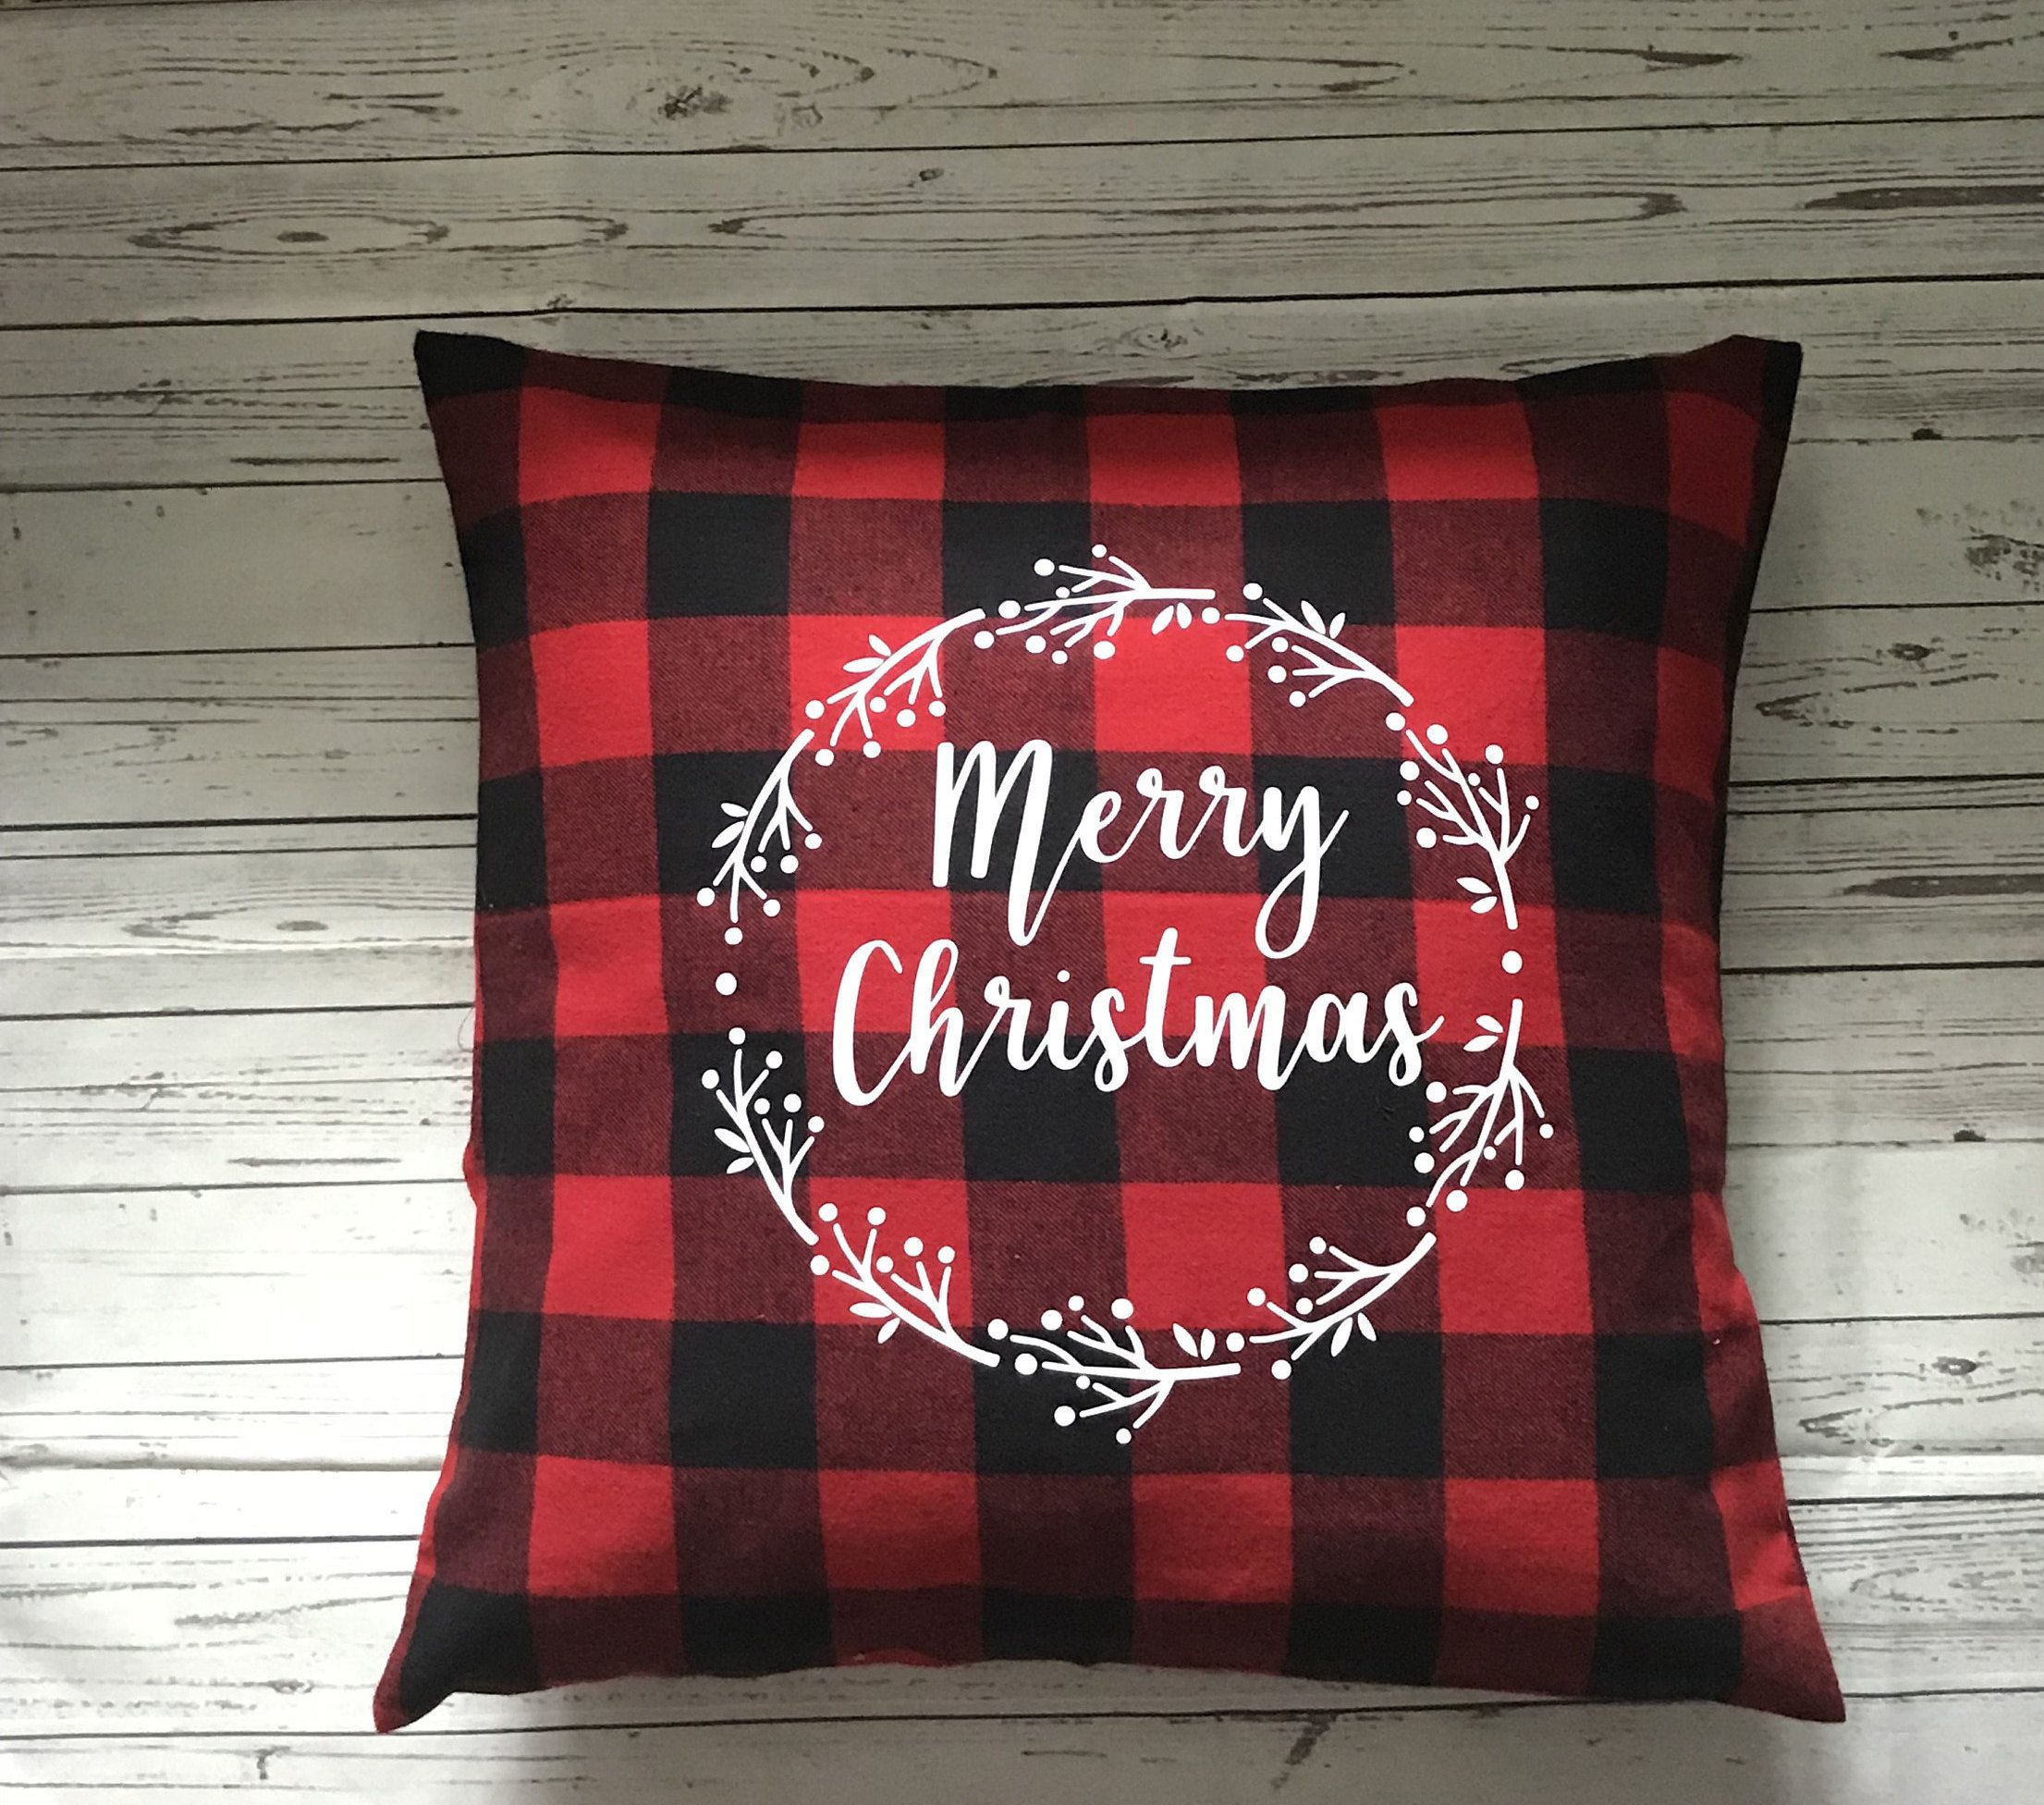 Throw Pillow Holiday Pillow Buffalo Check Farmhouse Plaid Pillow Red Black Gingham Merry Chris Holiday Pillows Throw Pillows Christmas Holiday Throw Pillow